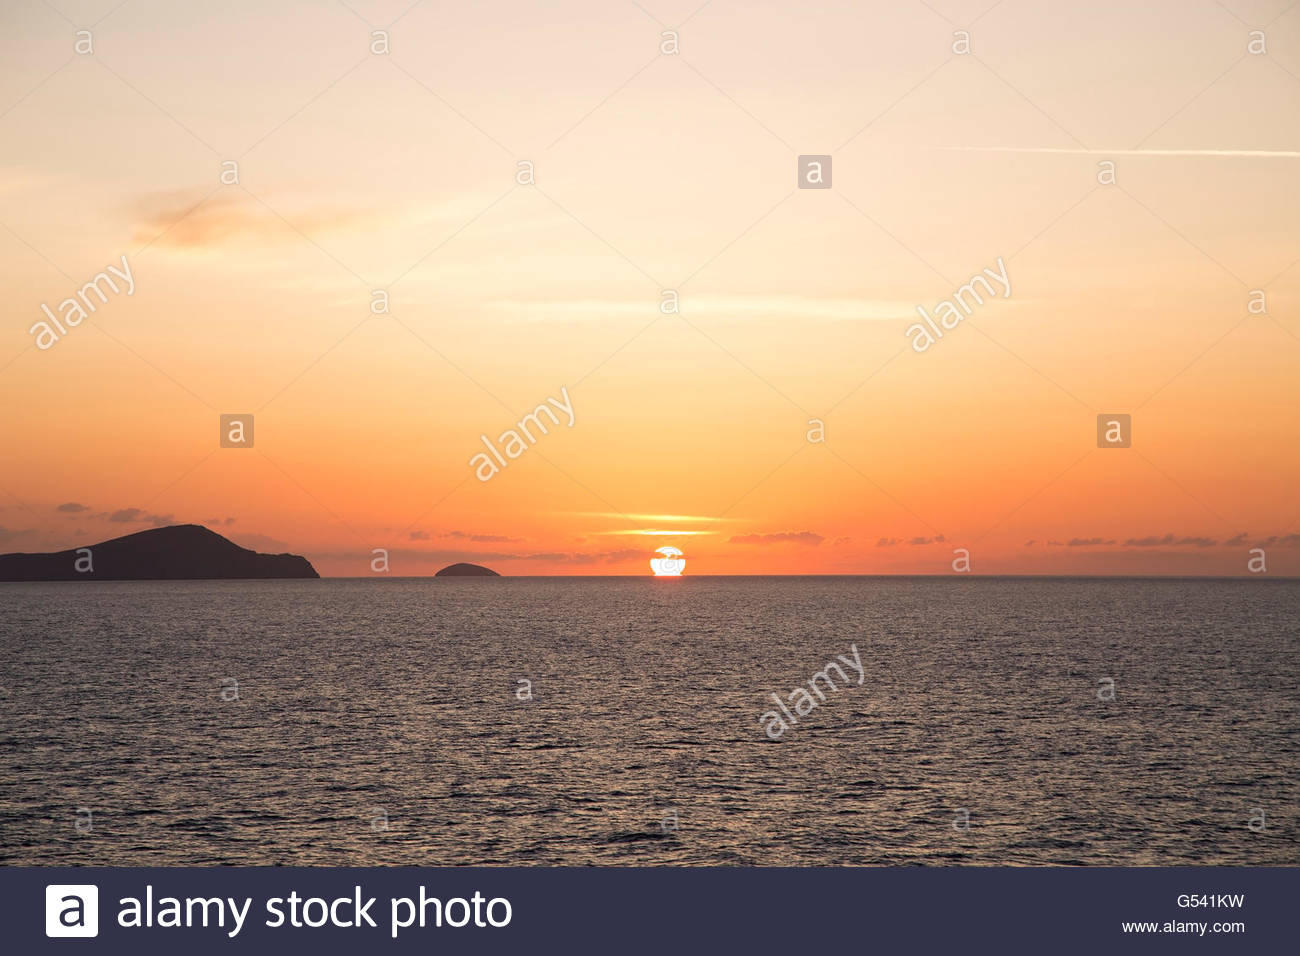 Orange sunset - Stock Image